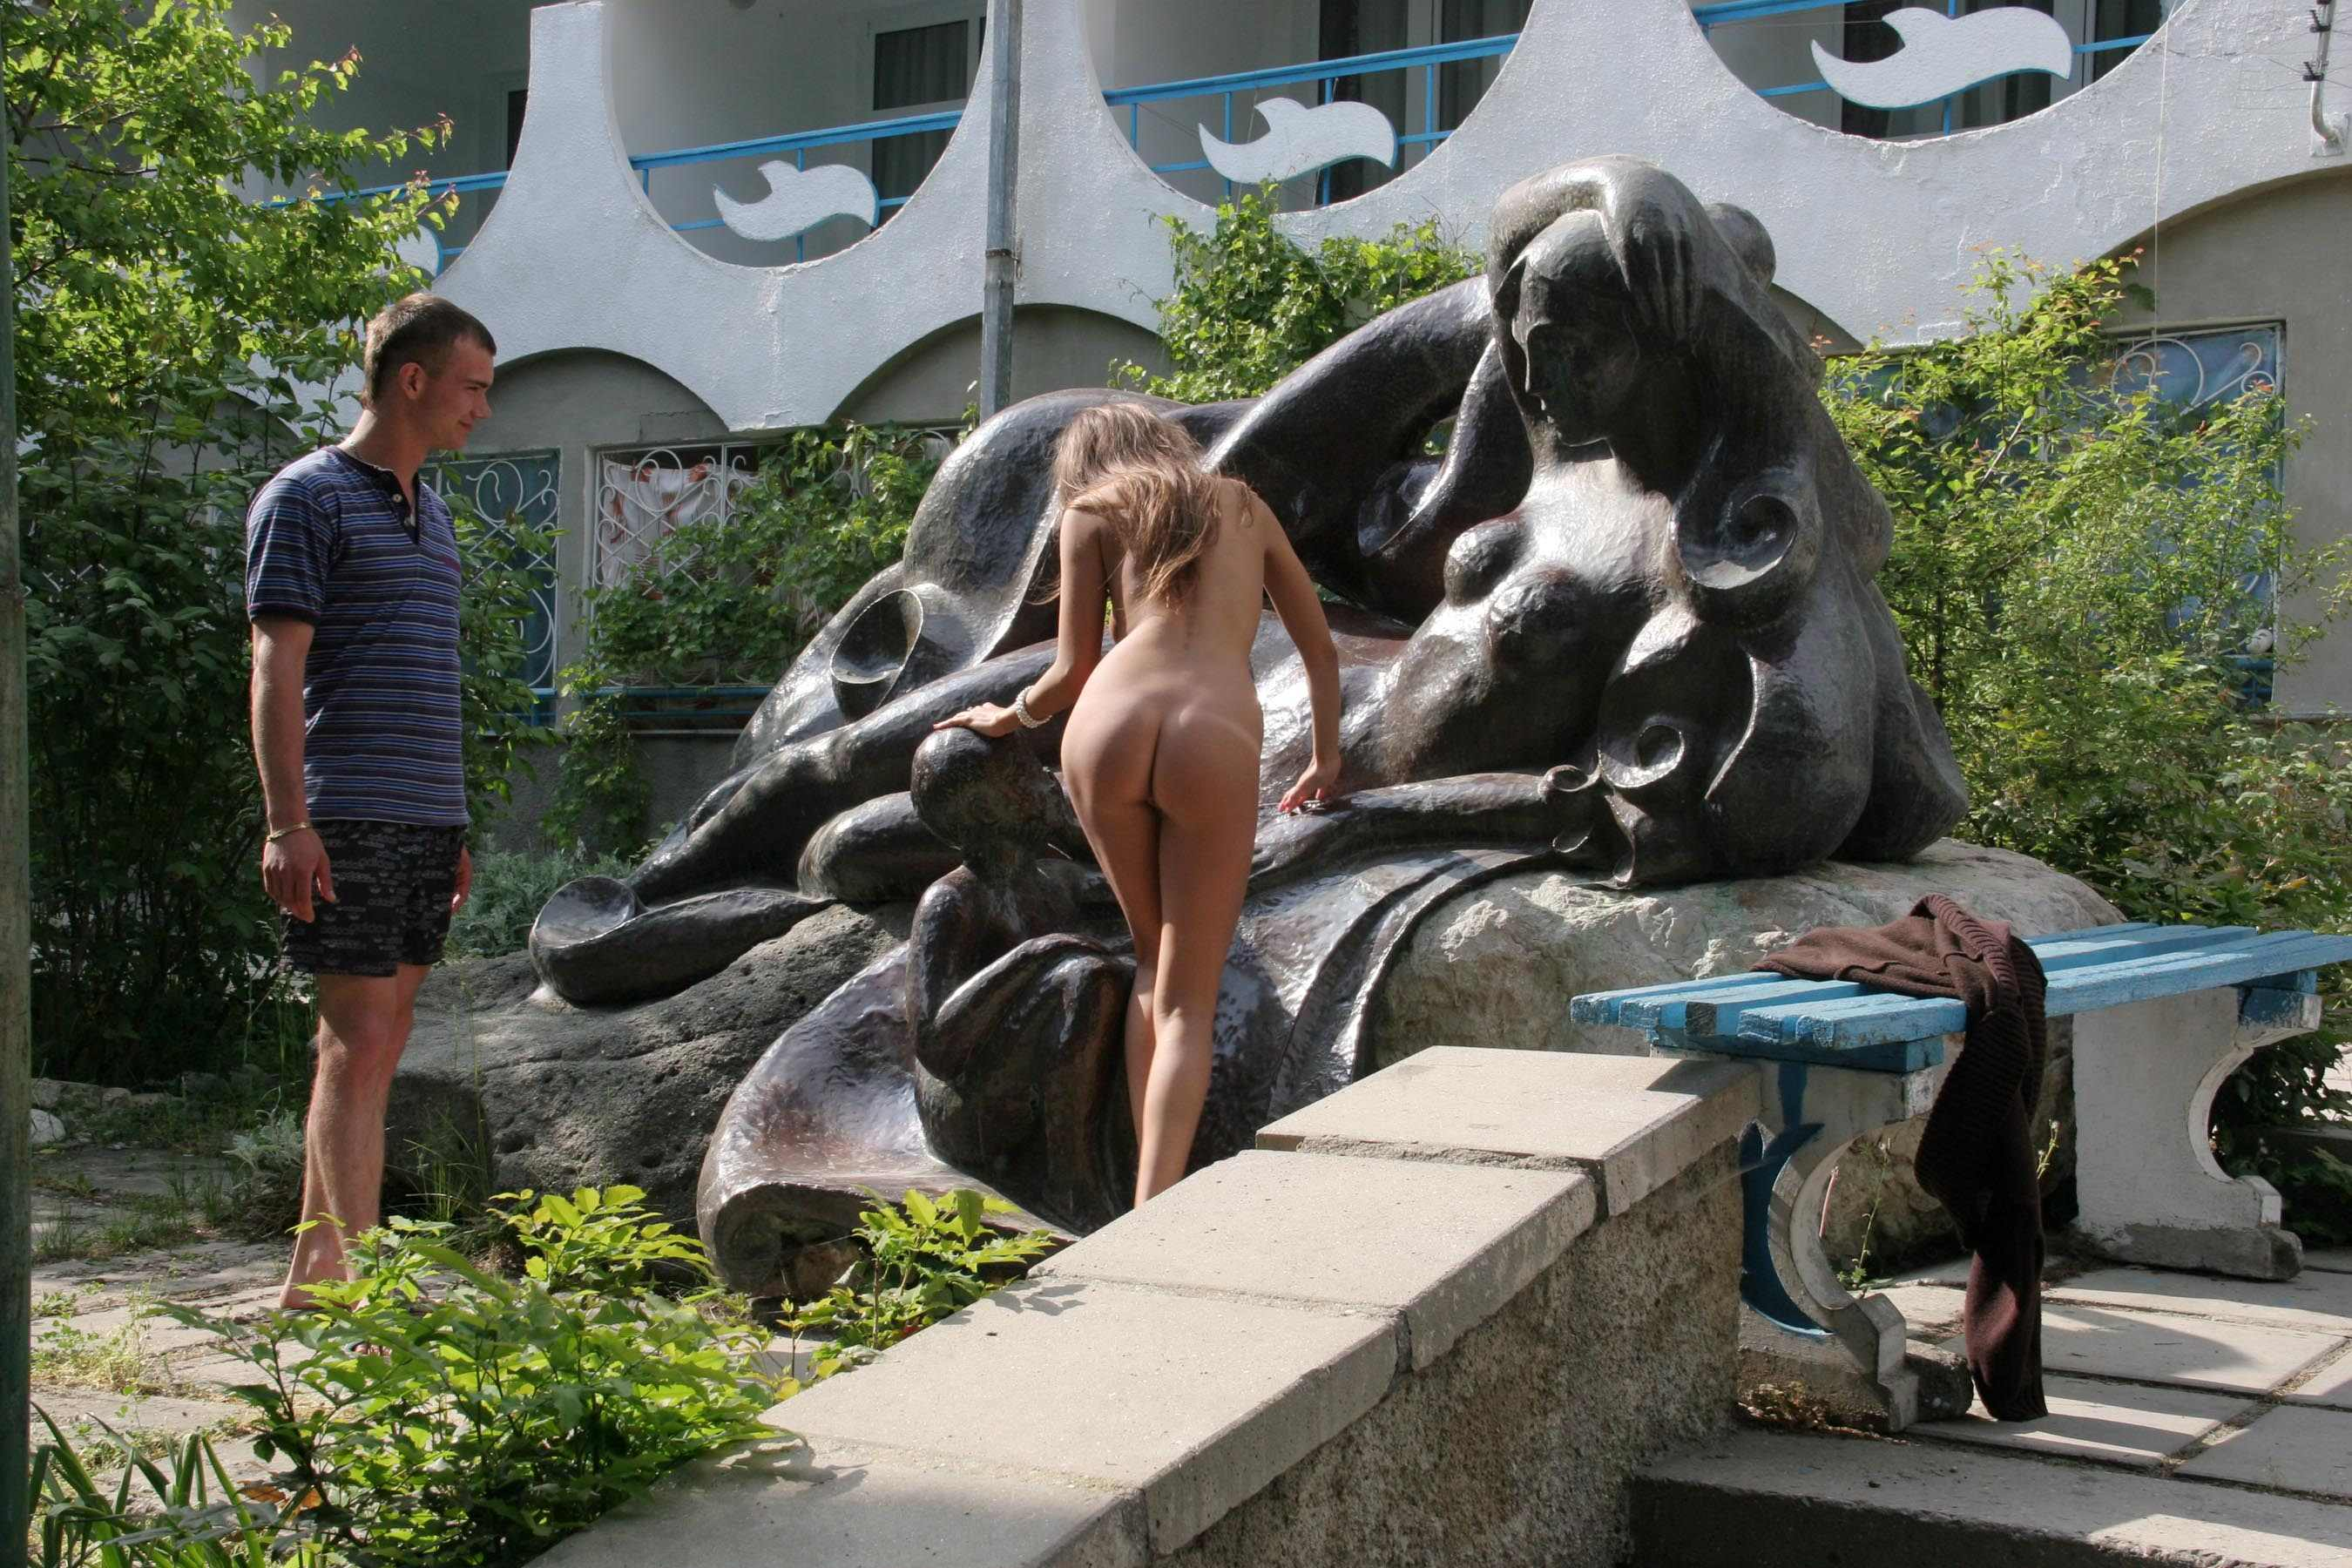 melena-crimean-holiday-public-nude-in-russia-13